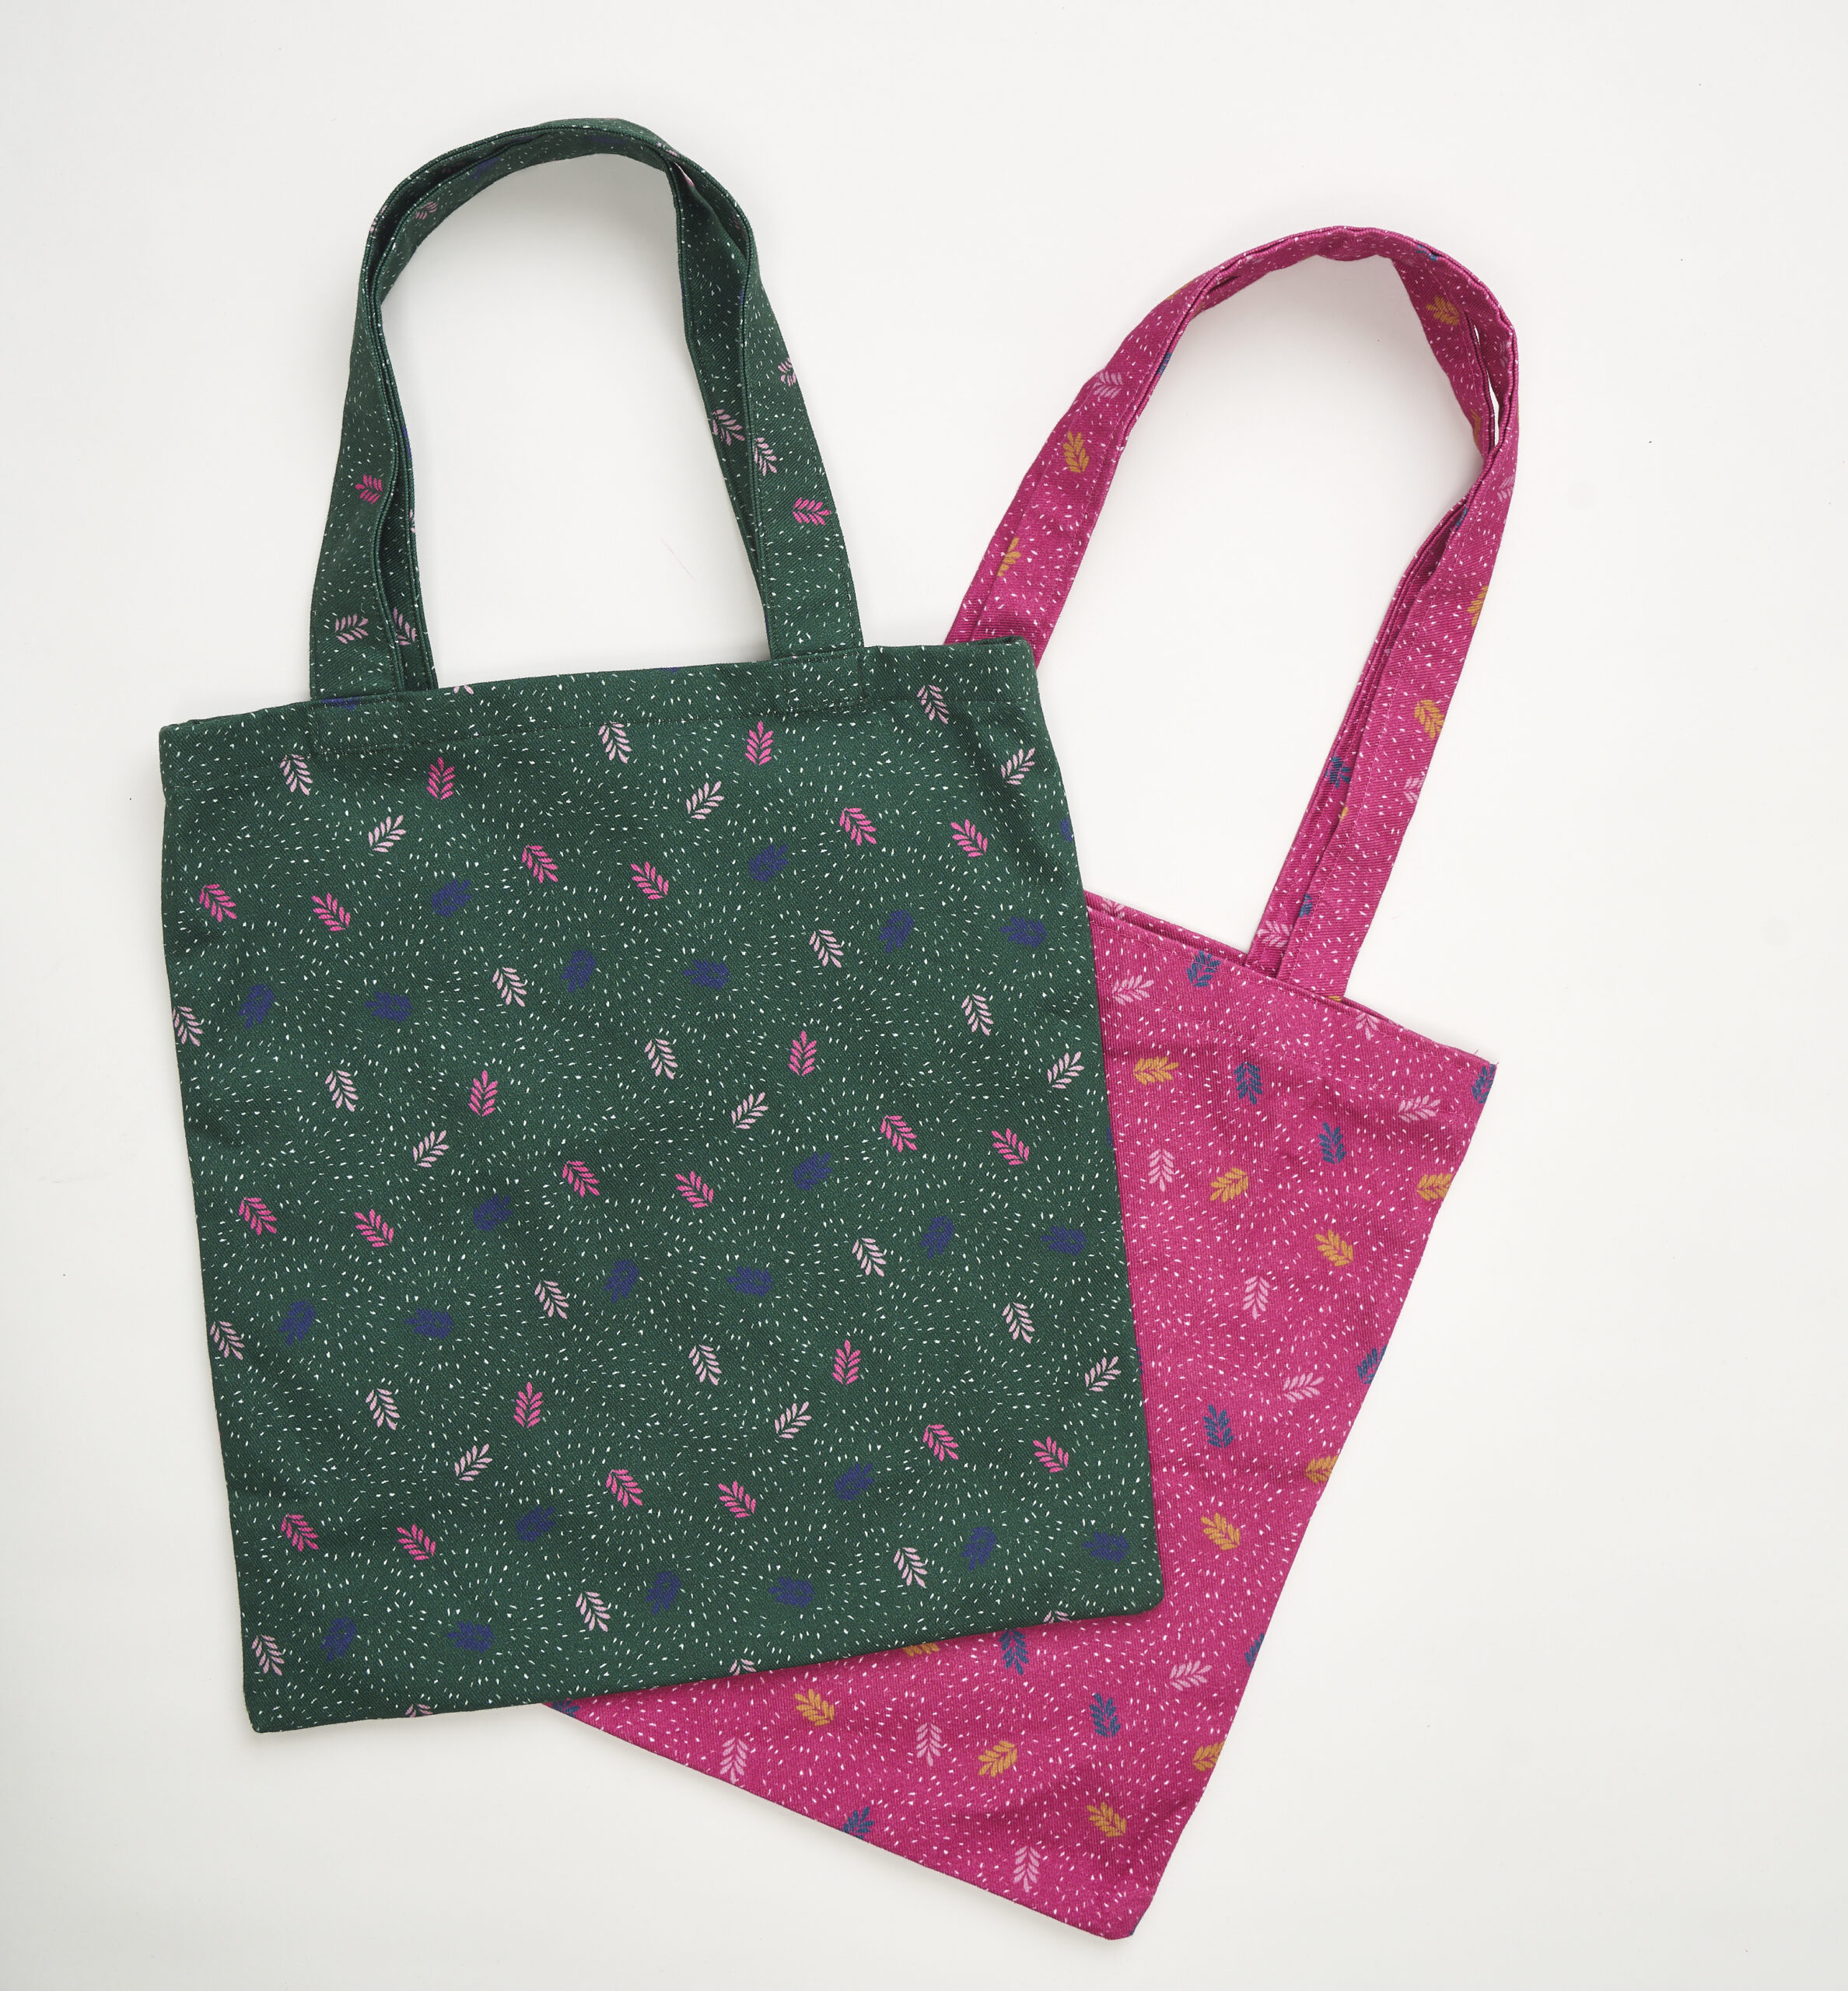 Sew Over It - Tote Bags